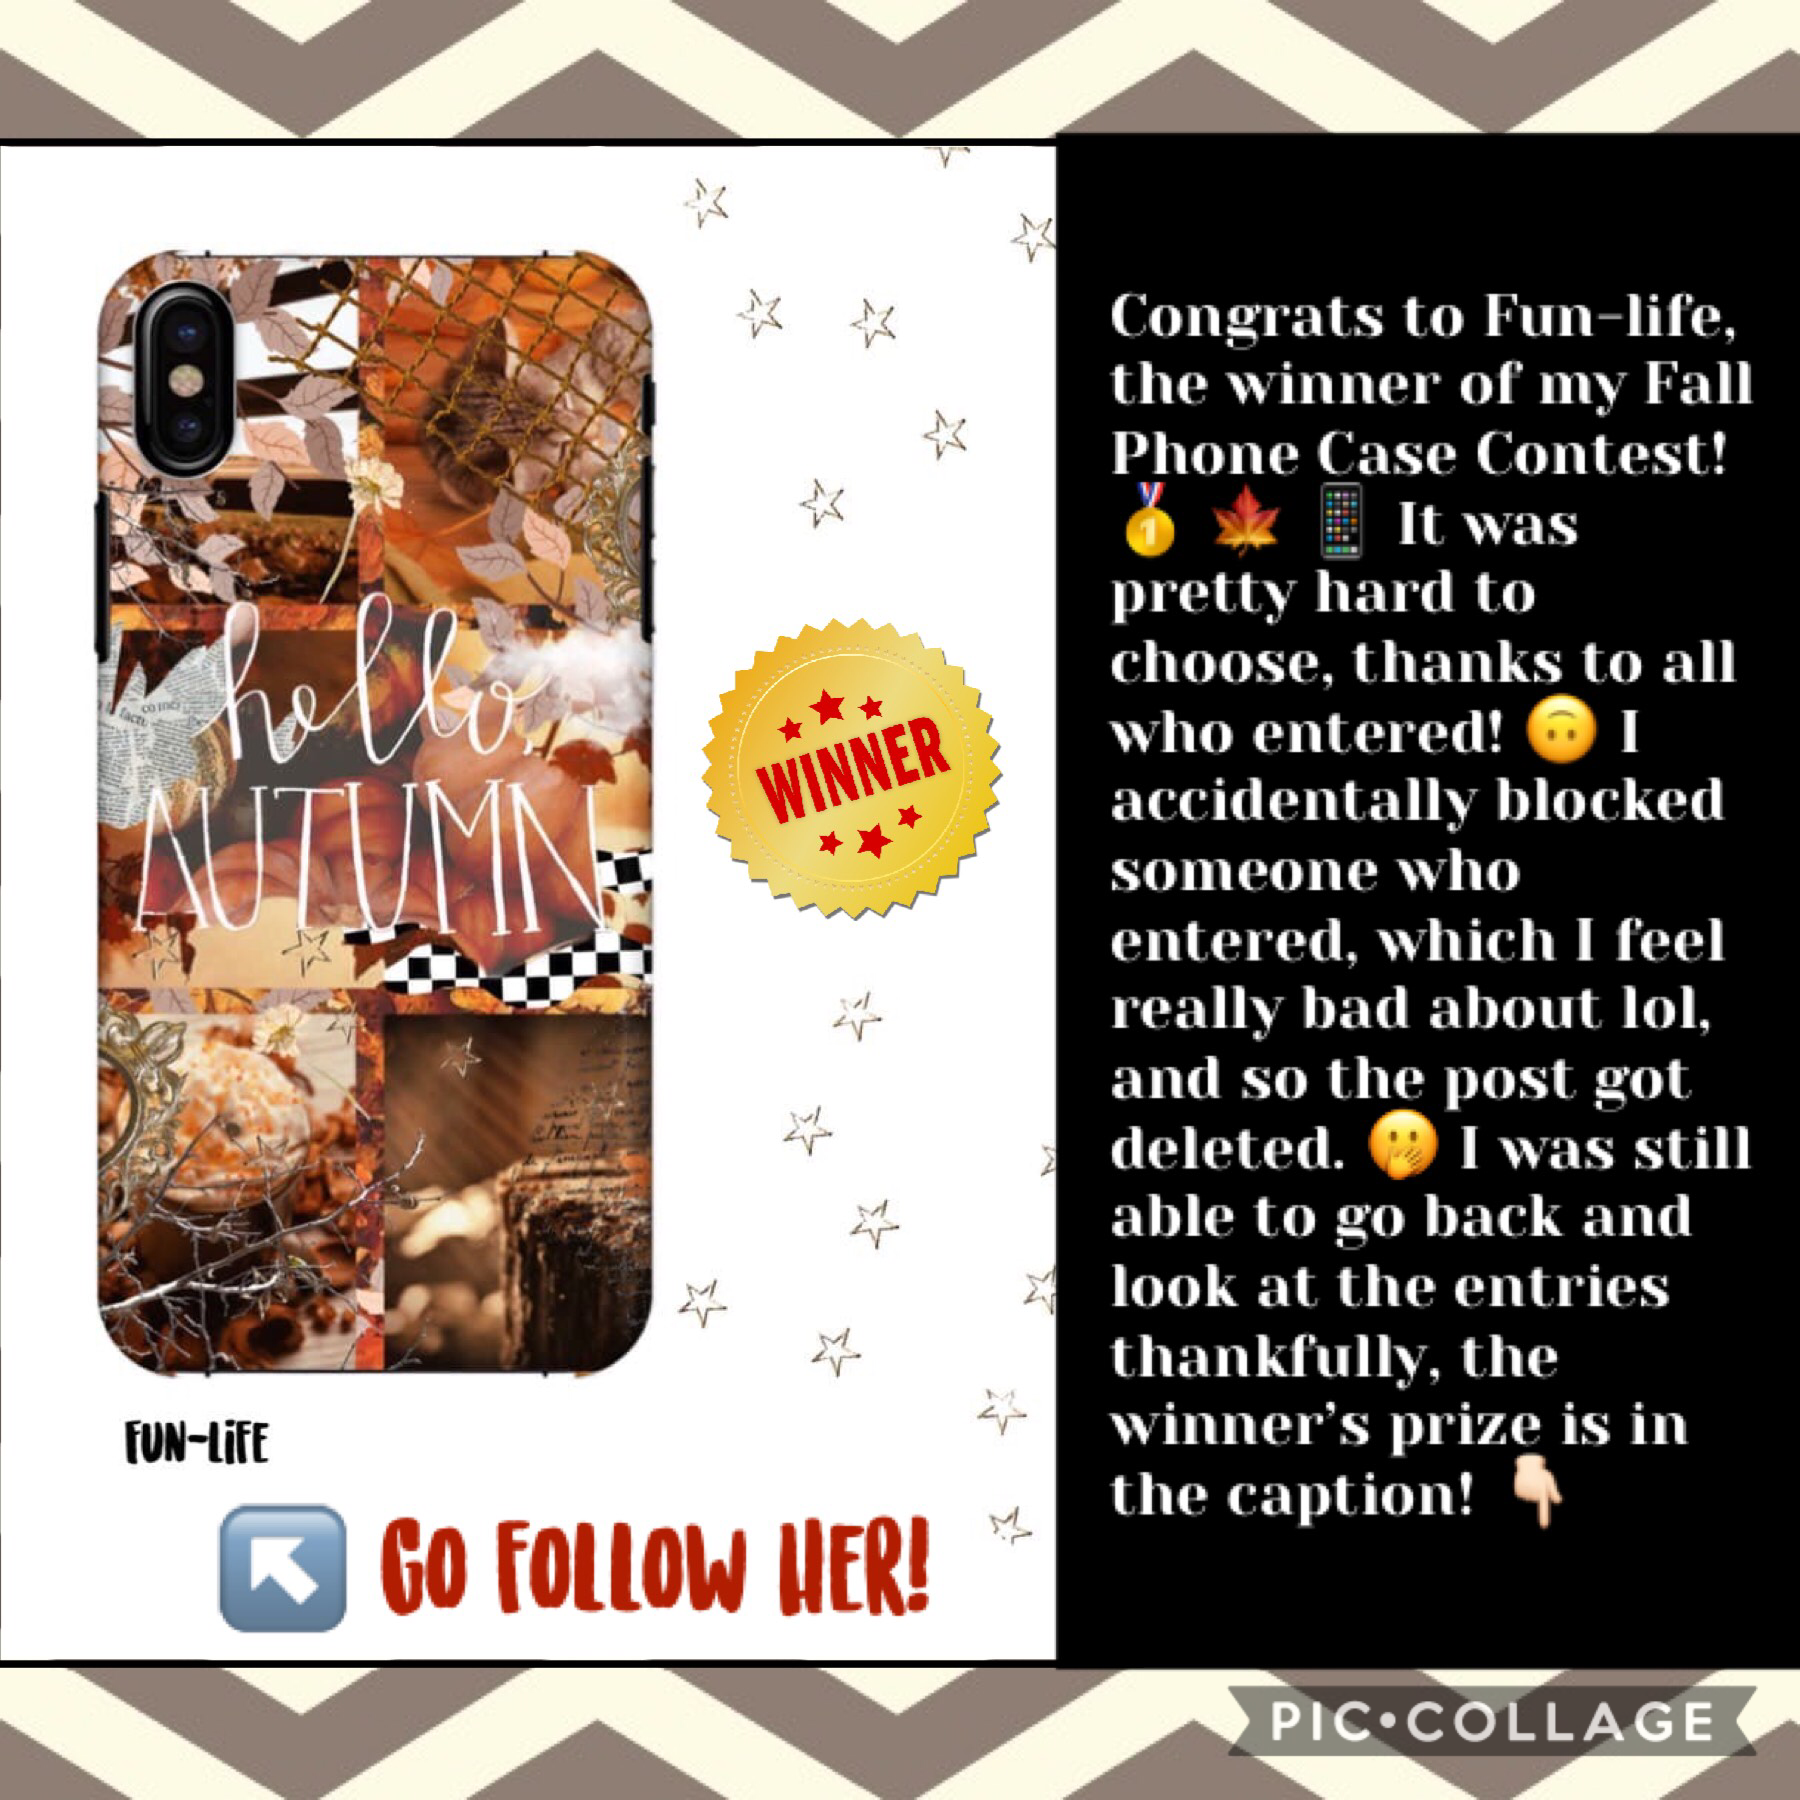 I should've ended it a bit sooner, but not that many ppl entered. 😅 🍂 📱 Congrats Fun-life! 👏🏻 This is your shoutout, I'll remix your png pack after this, and I'll spam you with my other account soon! 🏆 It's finally the weekend. 😫 I'm still busy tho. 😕